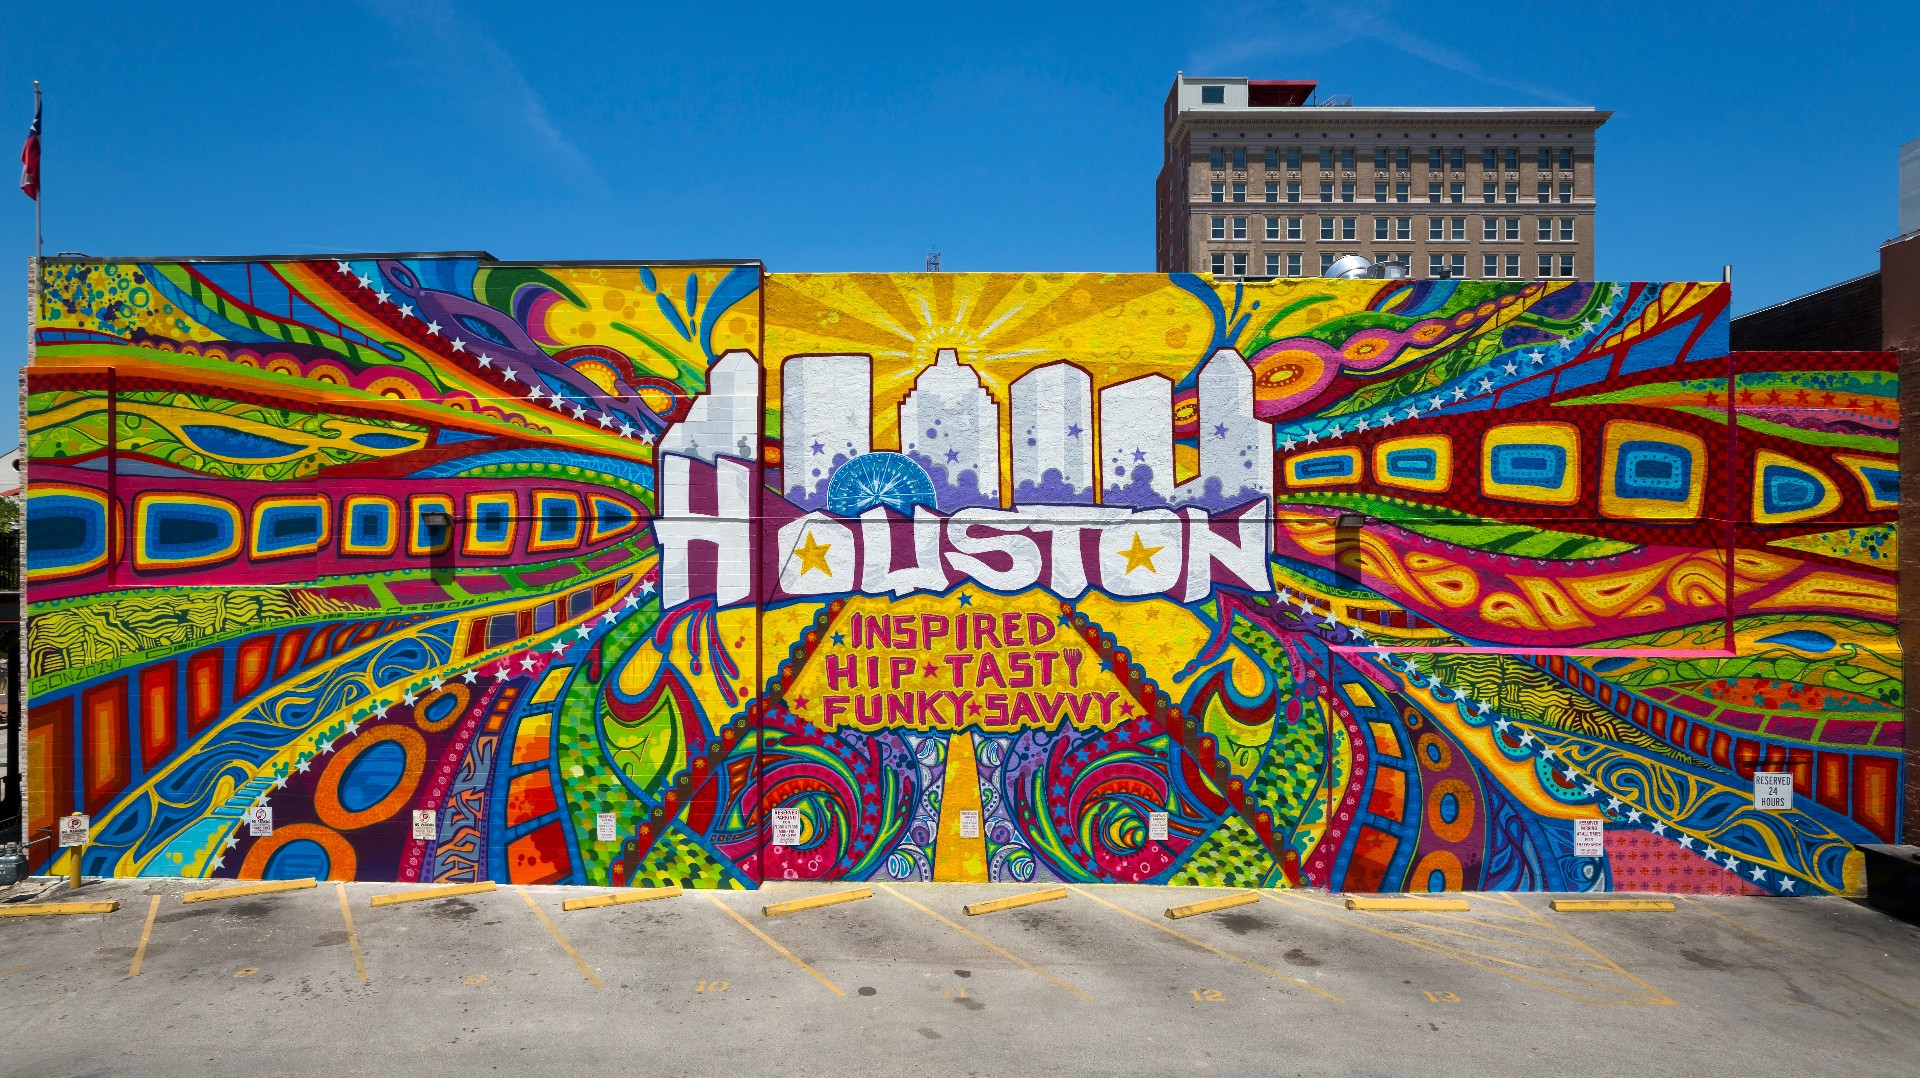 51 FREE things to do in the Houston area